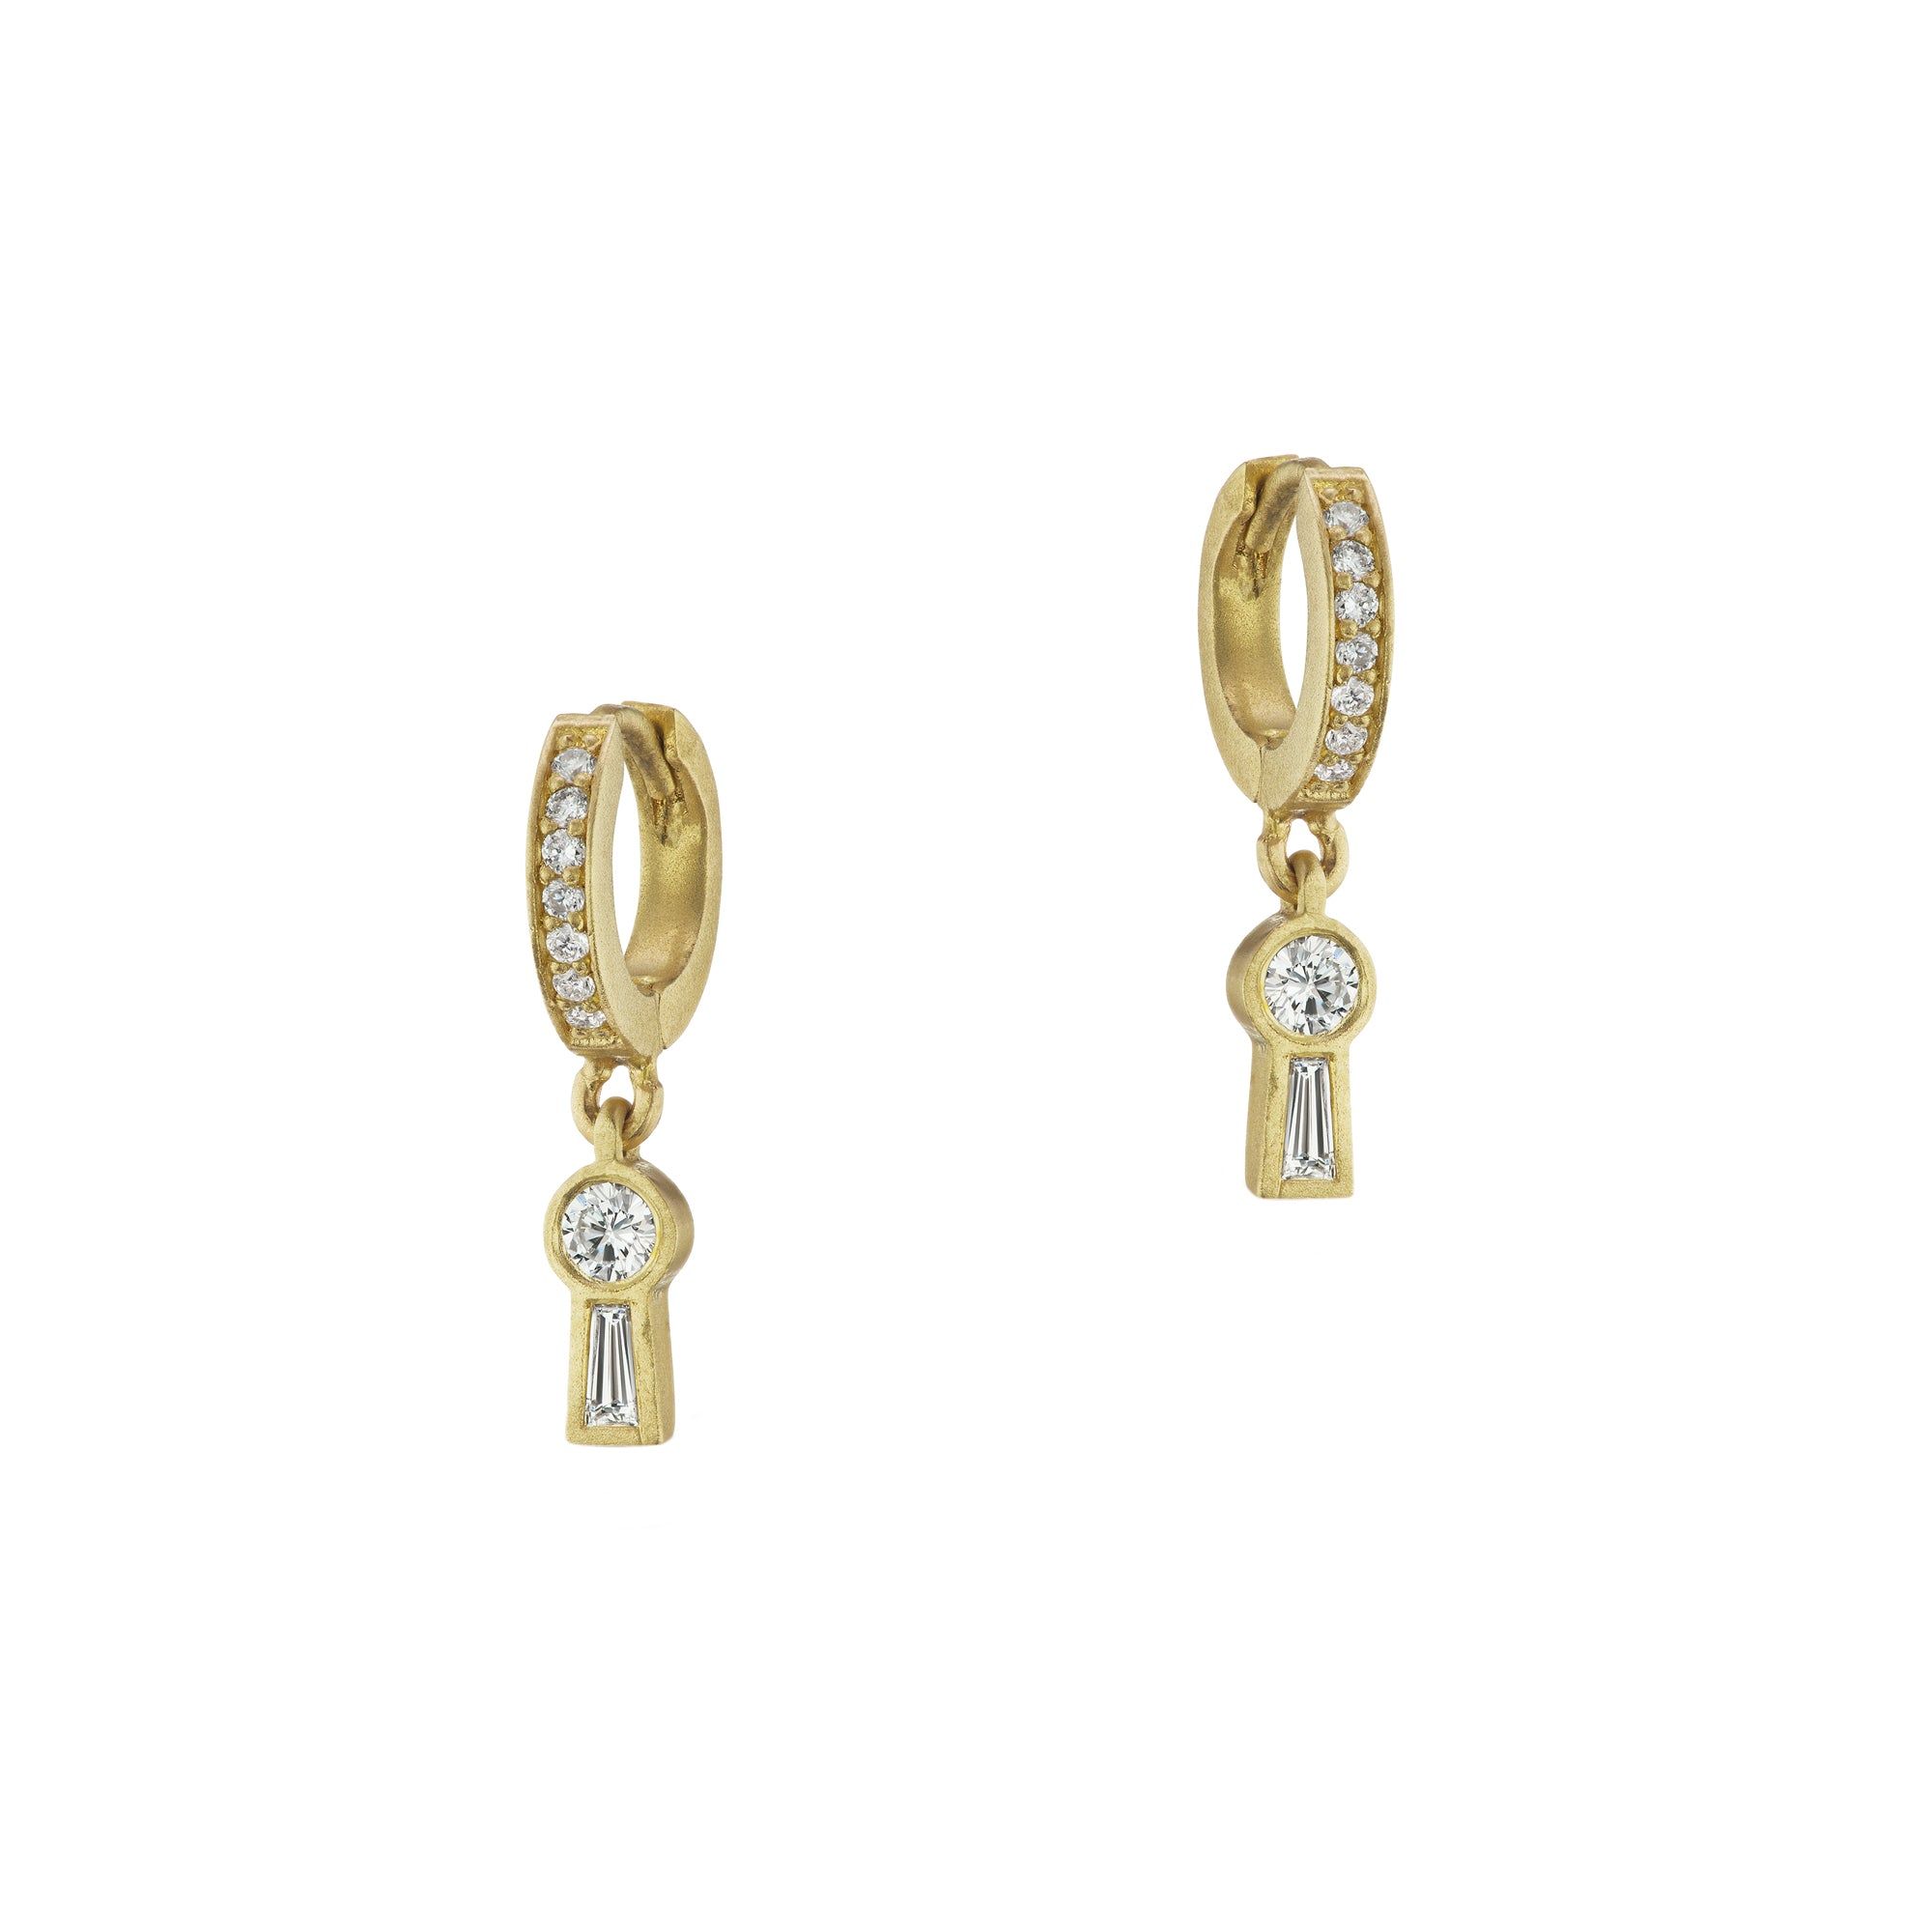 Michelle Fantaci Keyhole Huggies - Earrings - Broken English Jewelry